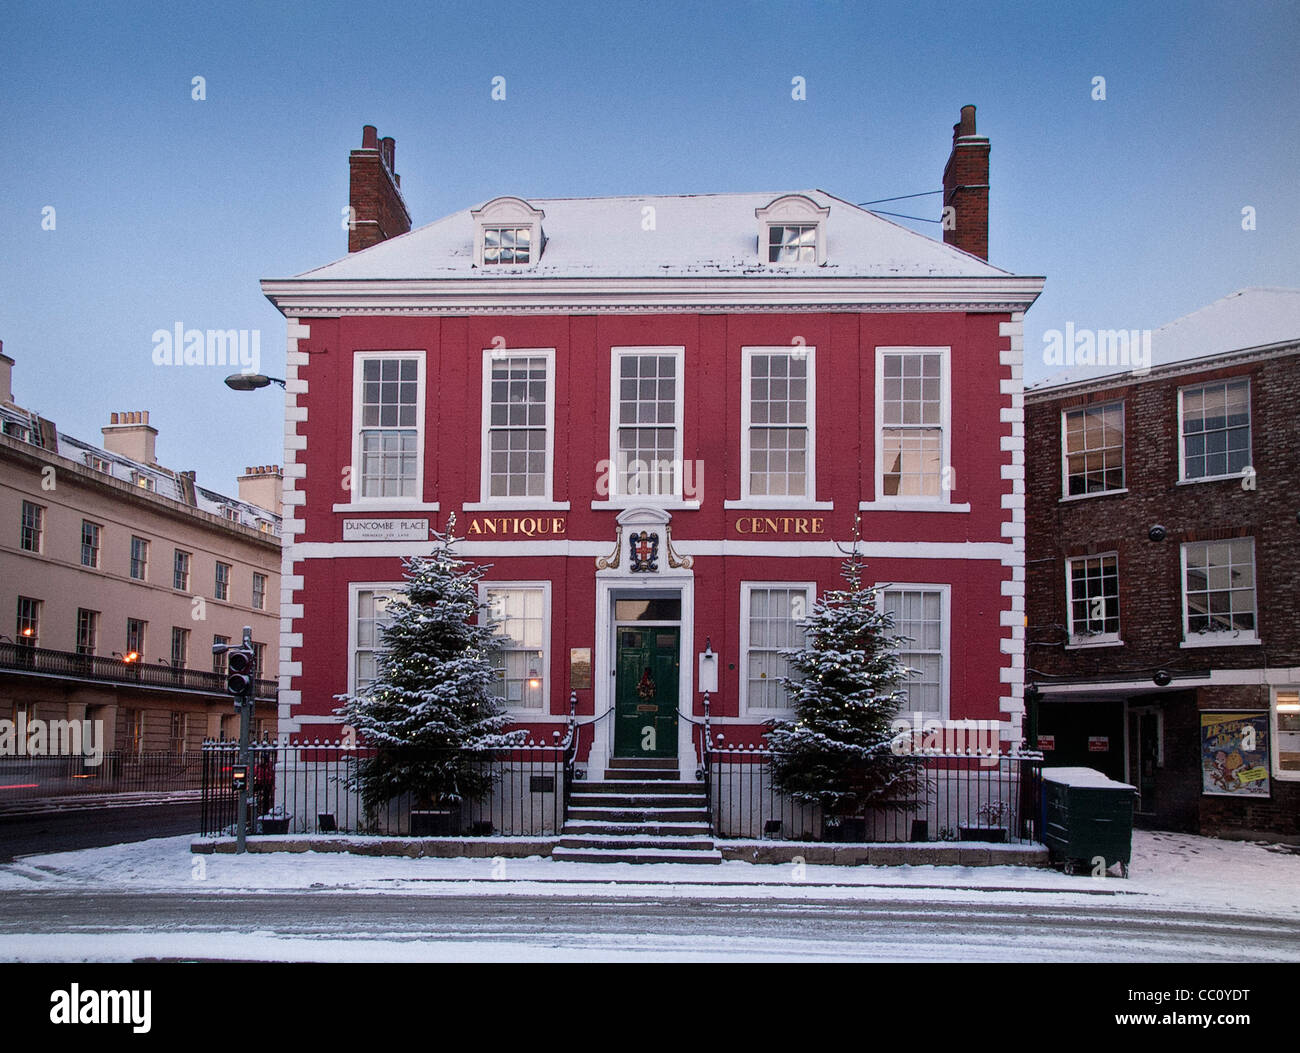 Red House Antiques centre in snow with Christmas trees - Stock Image